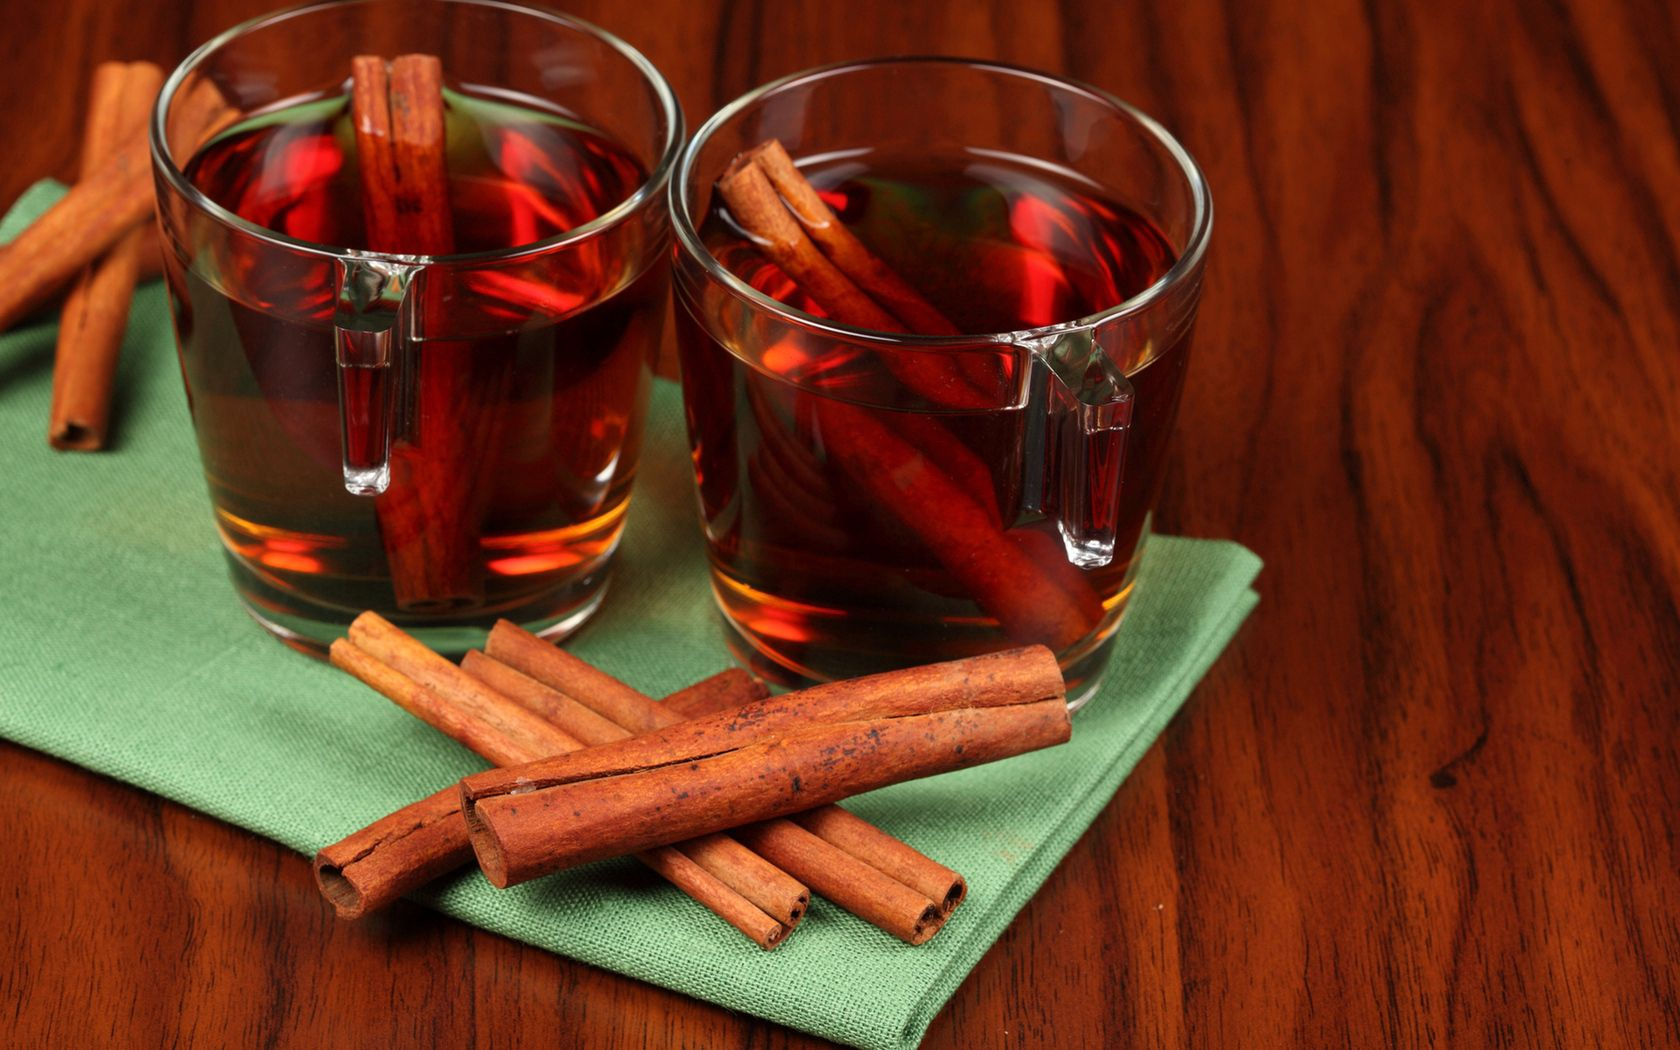 116929 download wallpaper Food, Cinnamon, Transparent, Tea, Tubes, Tubules screensavers and pictures for free